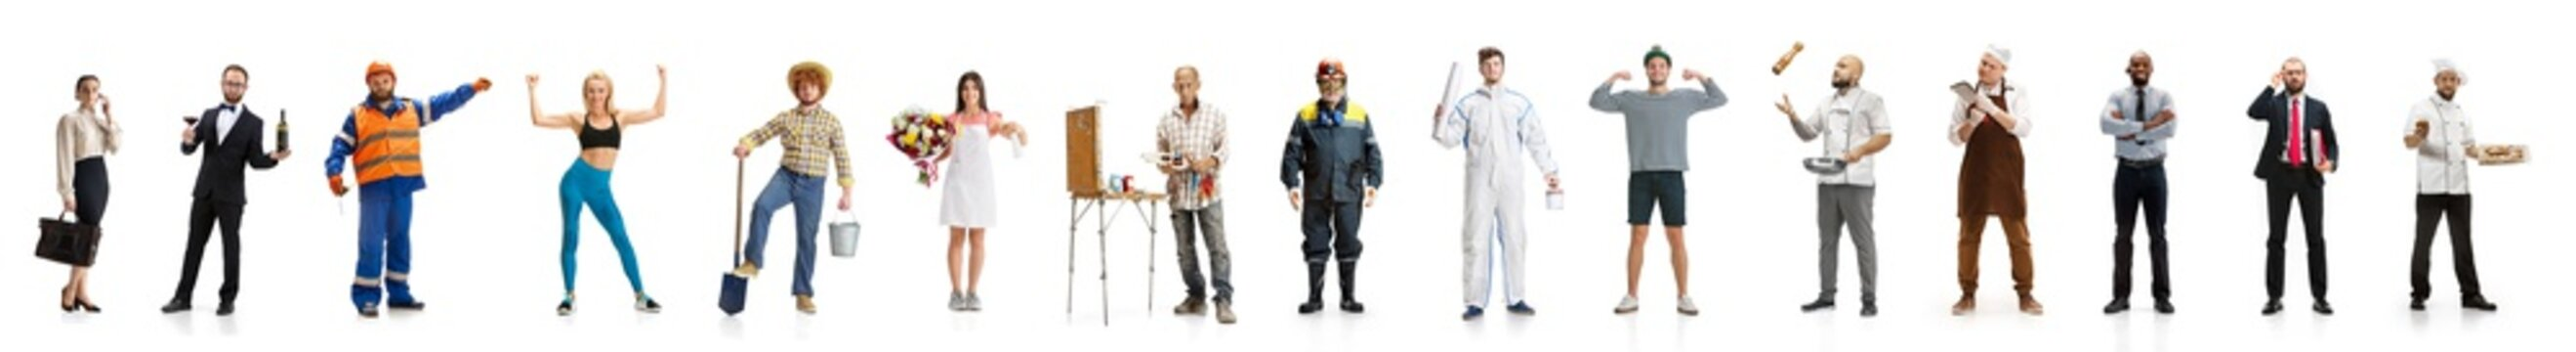 Art collage. Man and woman with different professions on white studio background, horizontal. Modern workers of diverse occupations like stylist, painter, farmer, accountant with equipment